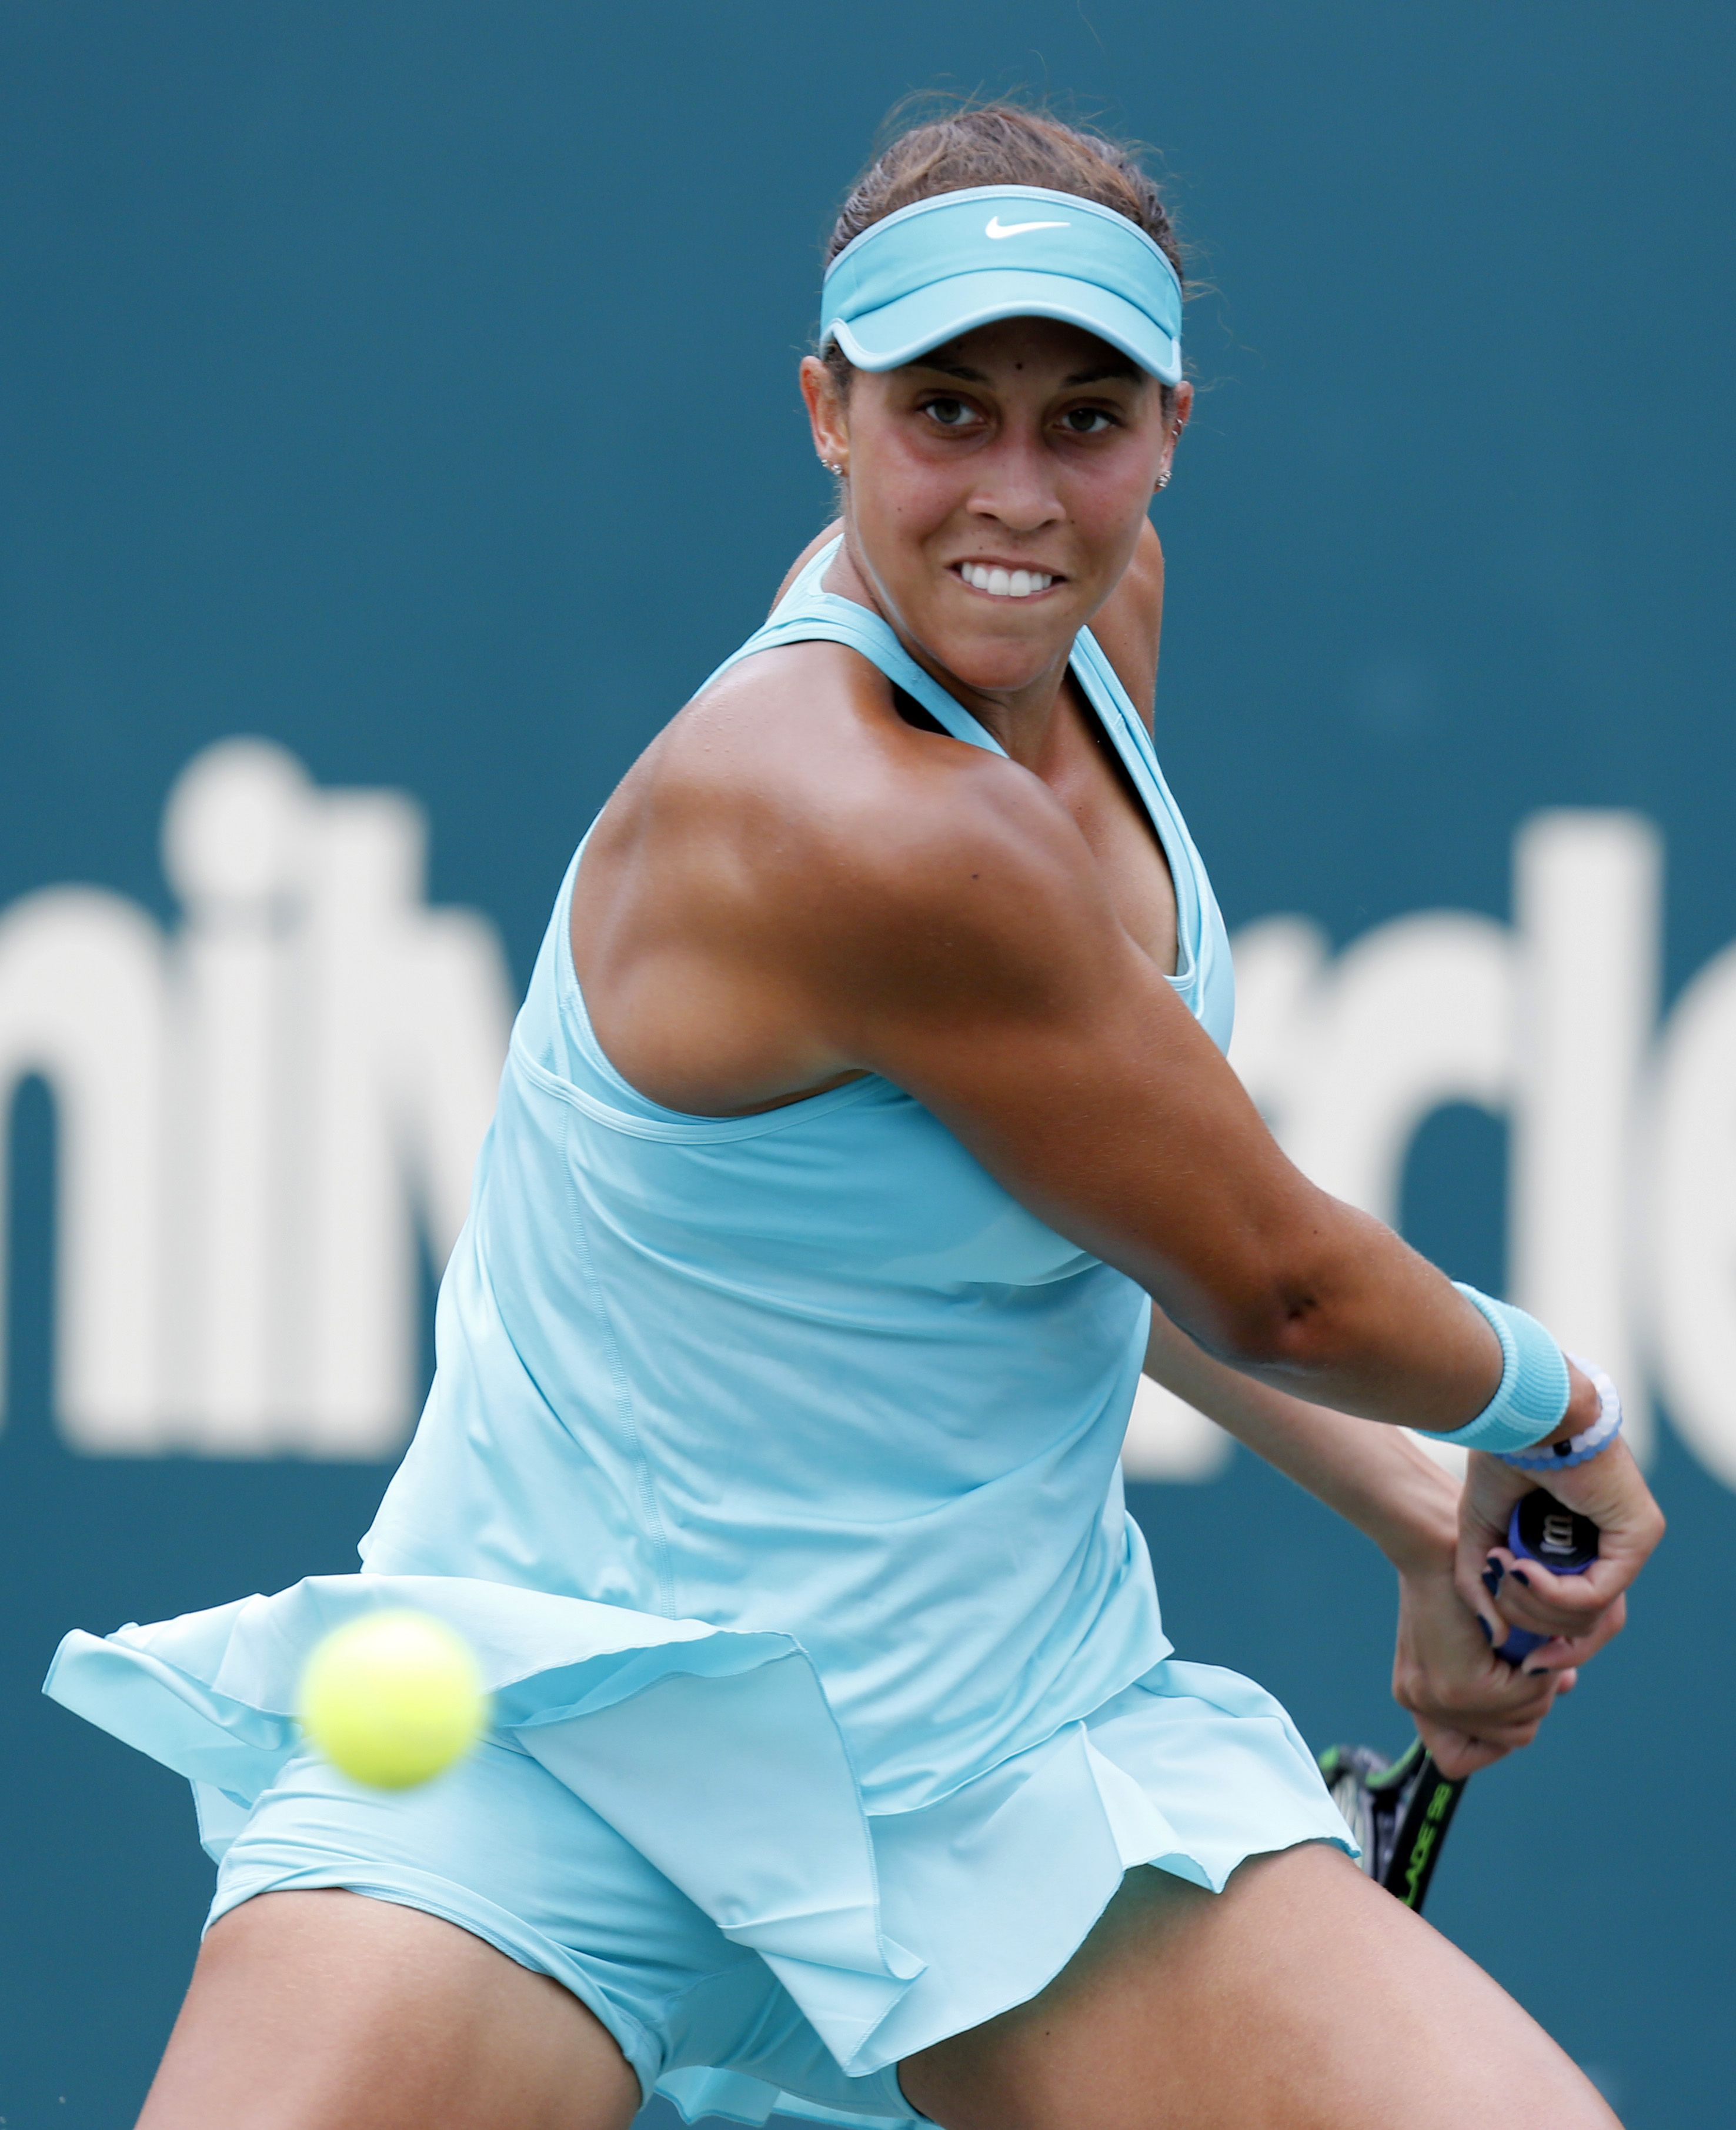 Madison Keys returns a shot against Angelique Kerber during singles final action at the Family Circle Cup tennis tournament in Charleston, S.C., Sunday, April 12, 2015. Kerber won the Family Circle Cup by beating Keys 6-2, 4-6, 7-5. (AP Photo/Mic Smith)